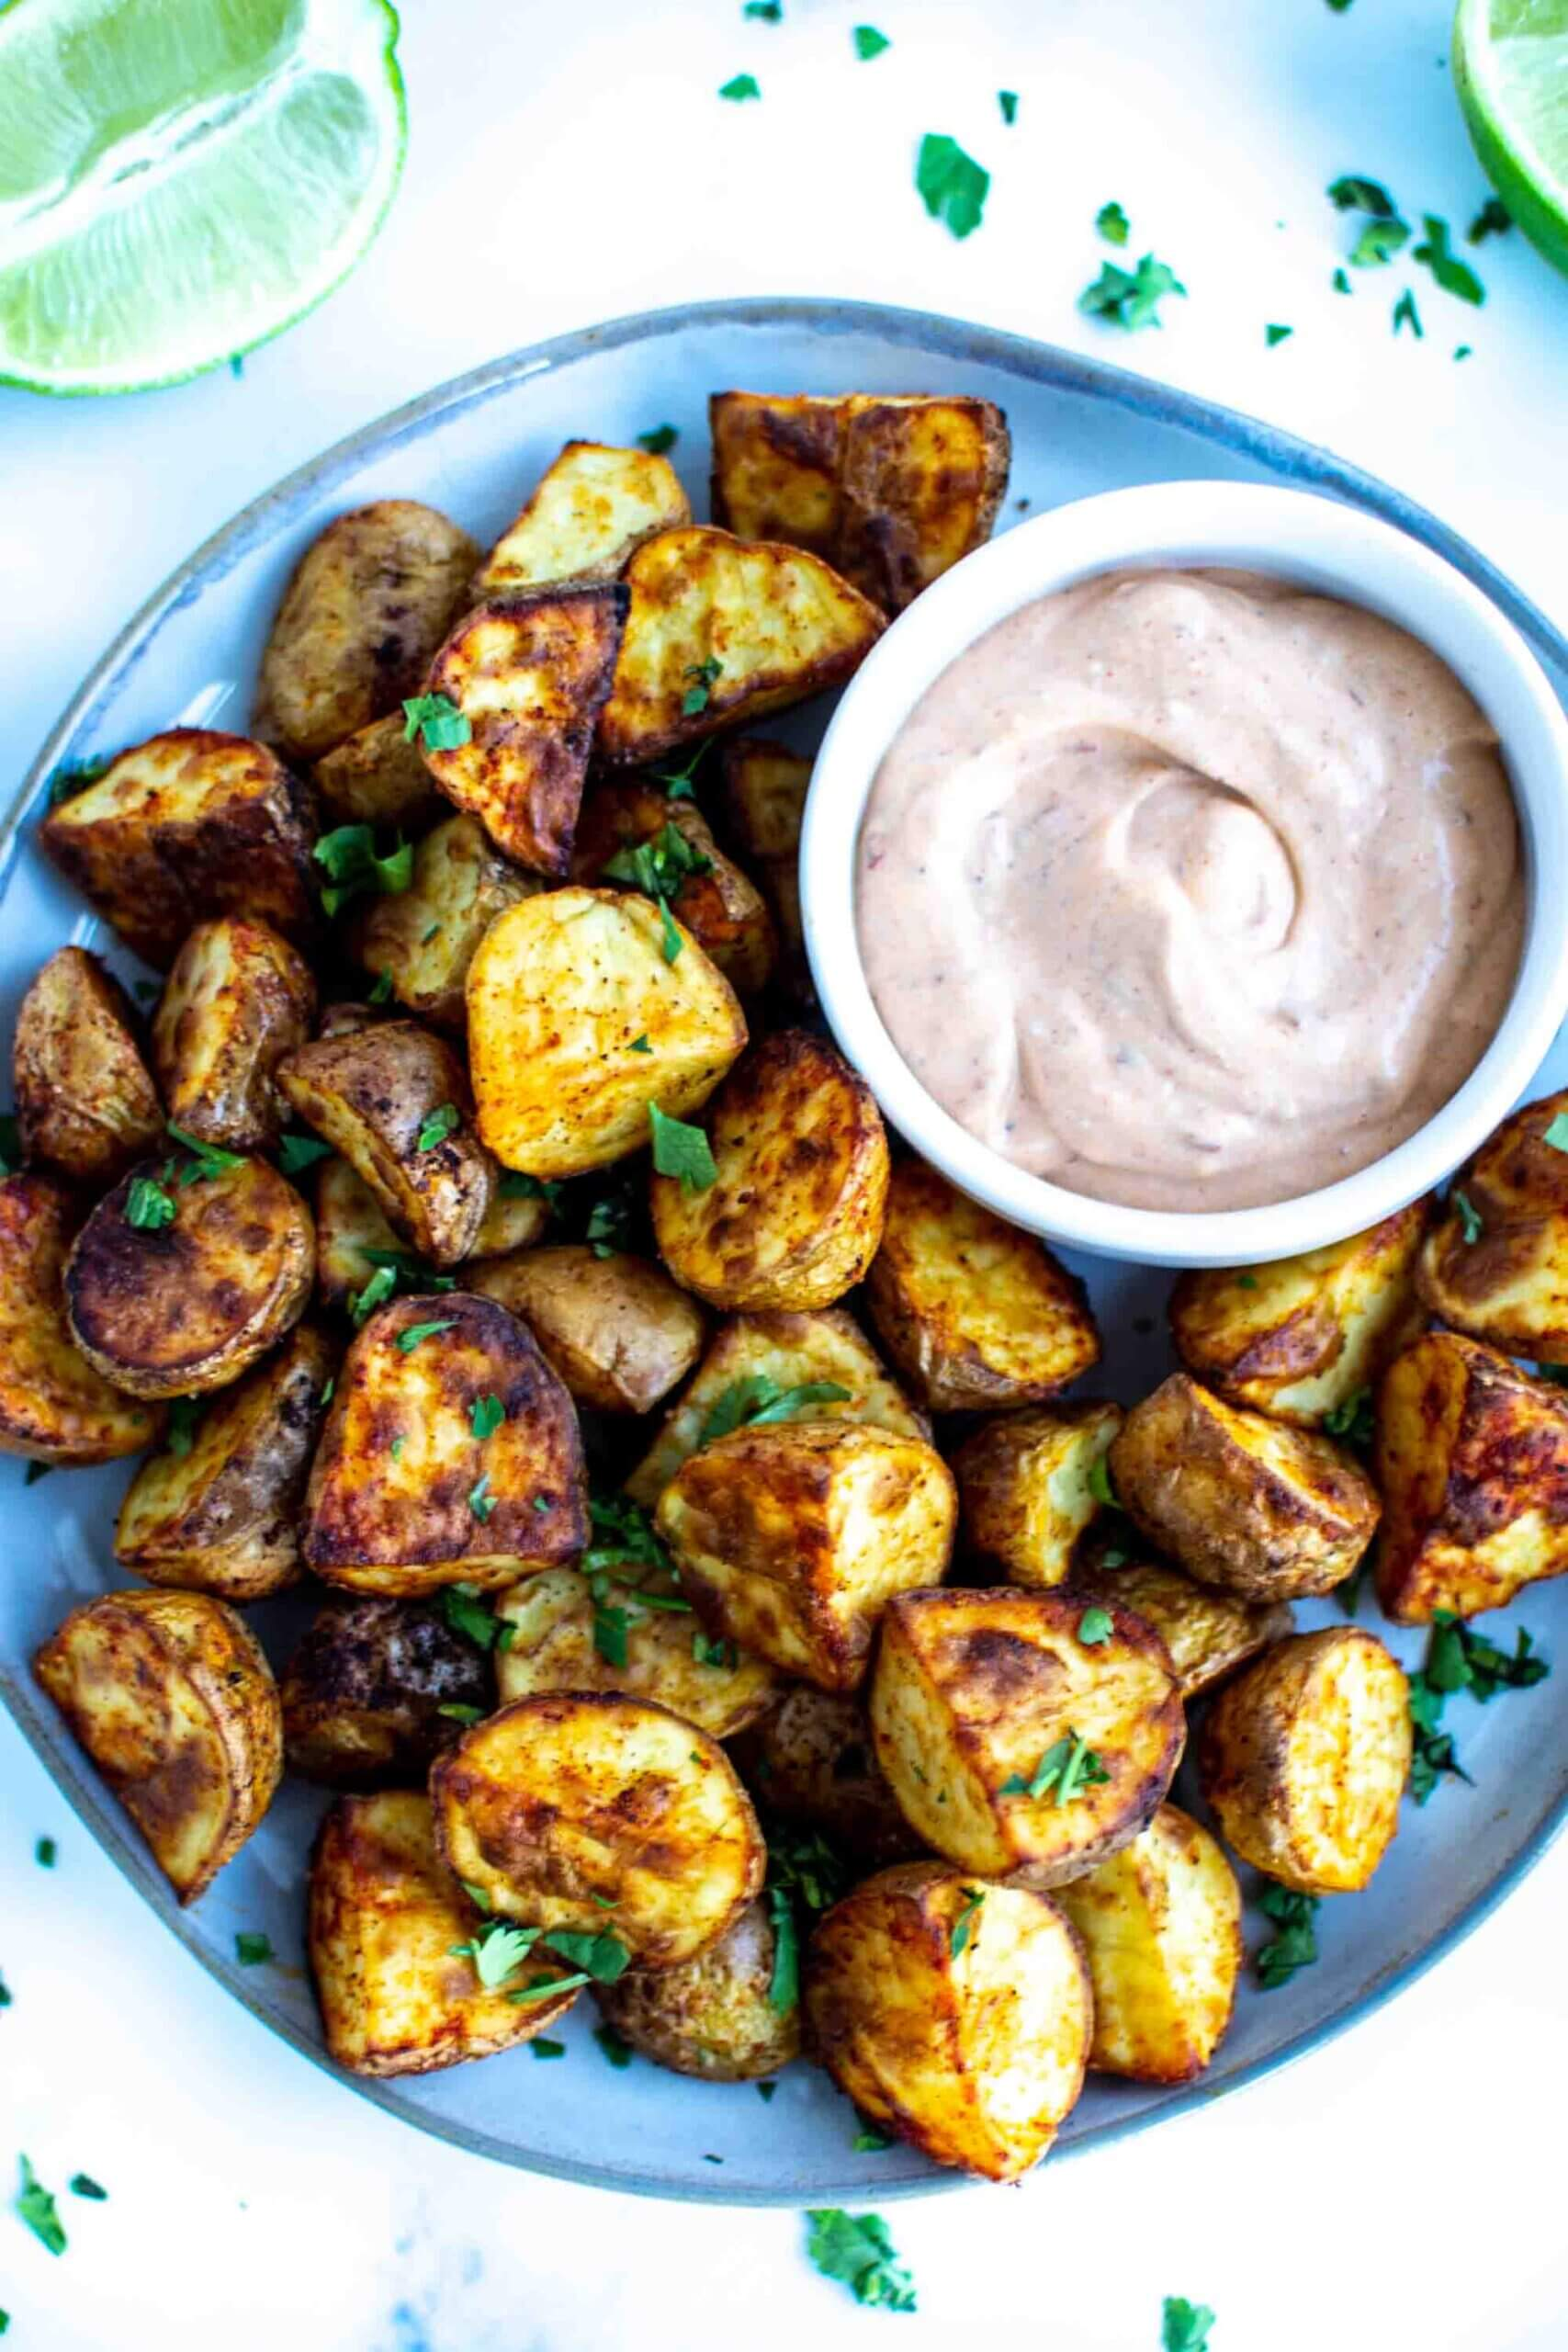 Roasted potatoes on a plate withg chipotle mayo